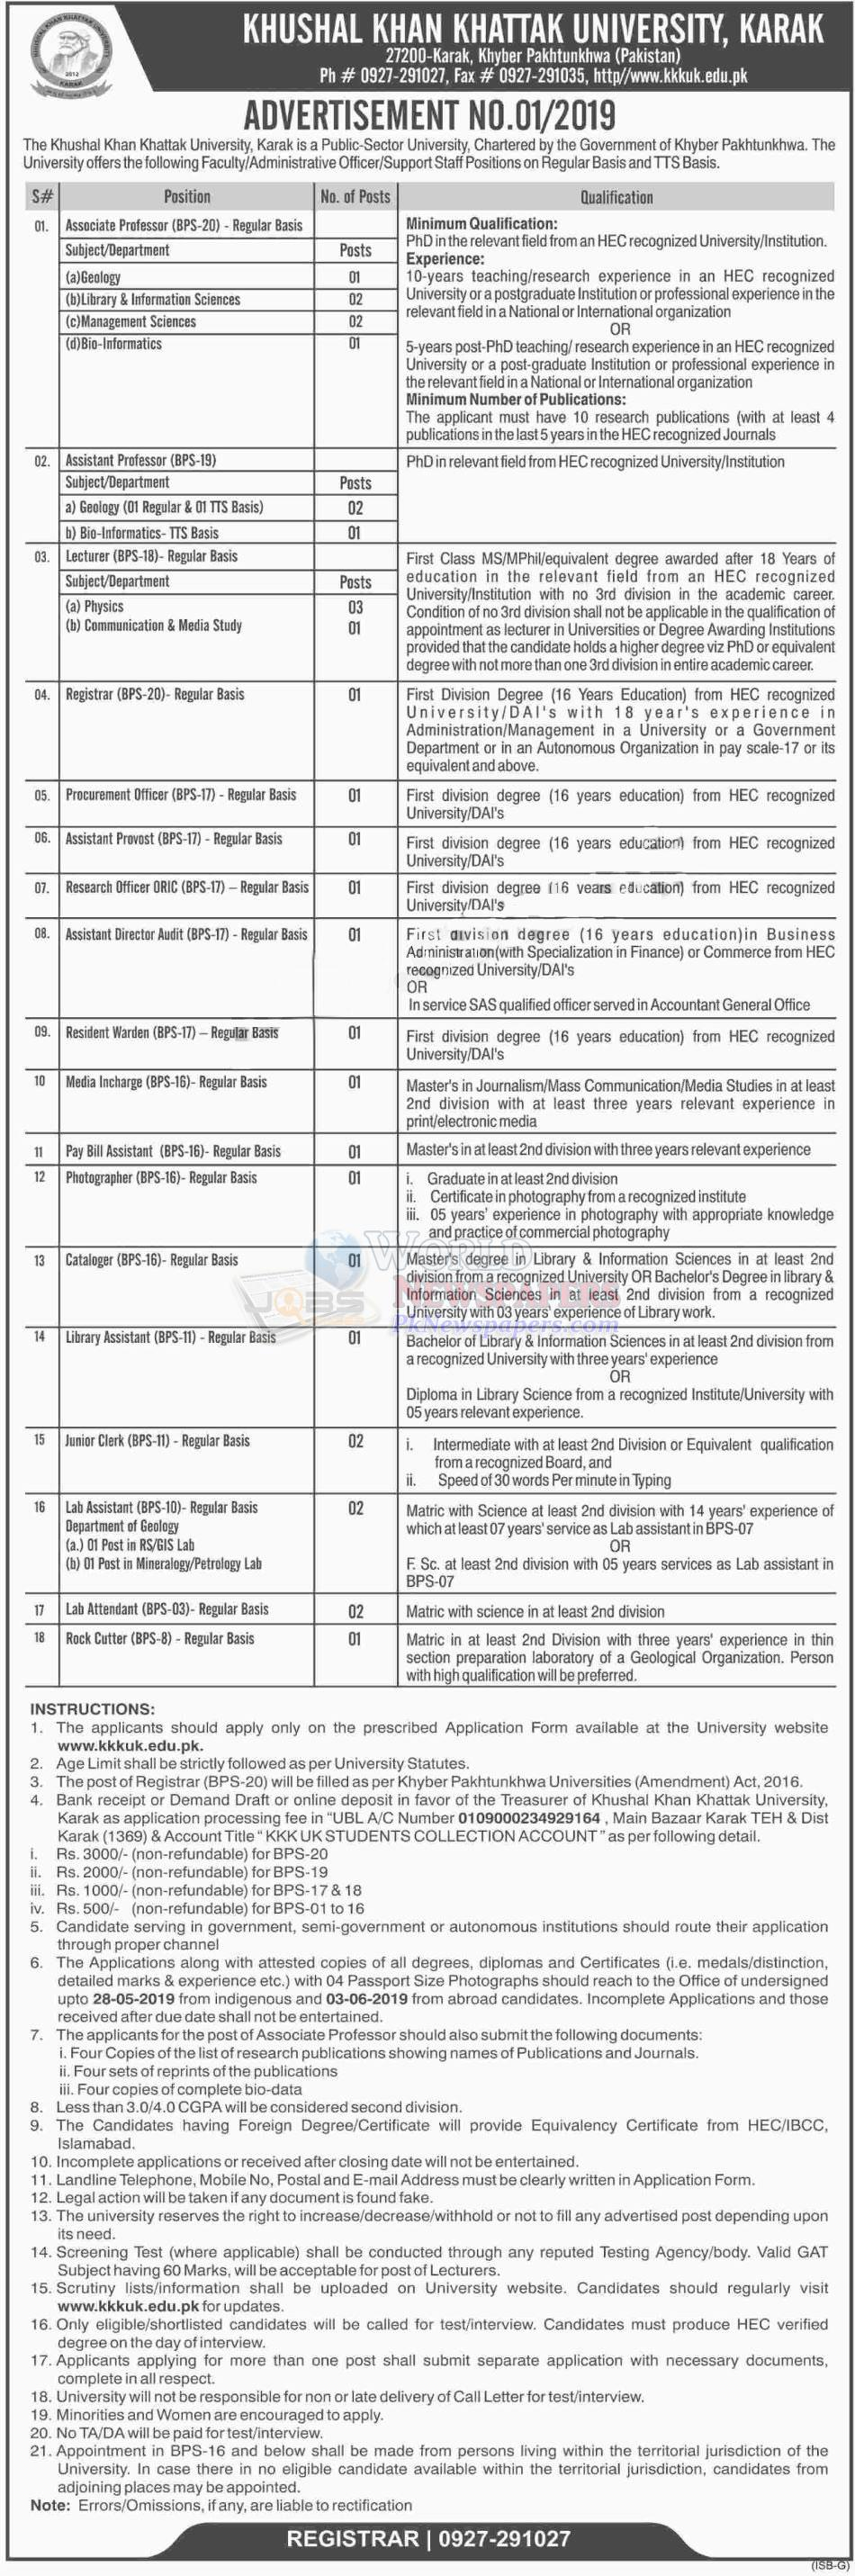 Jobs in Khushal Khan Khattak University